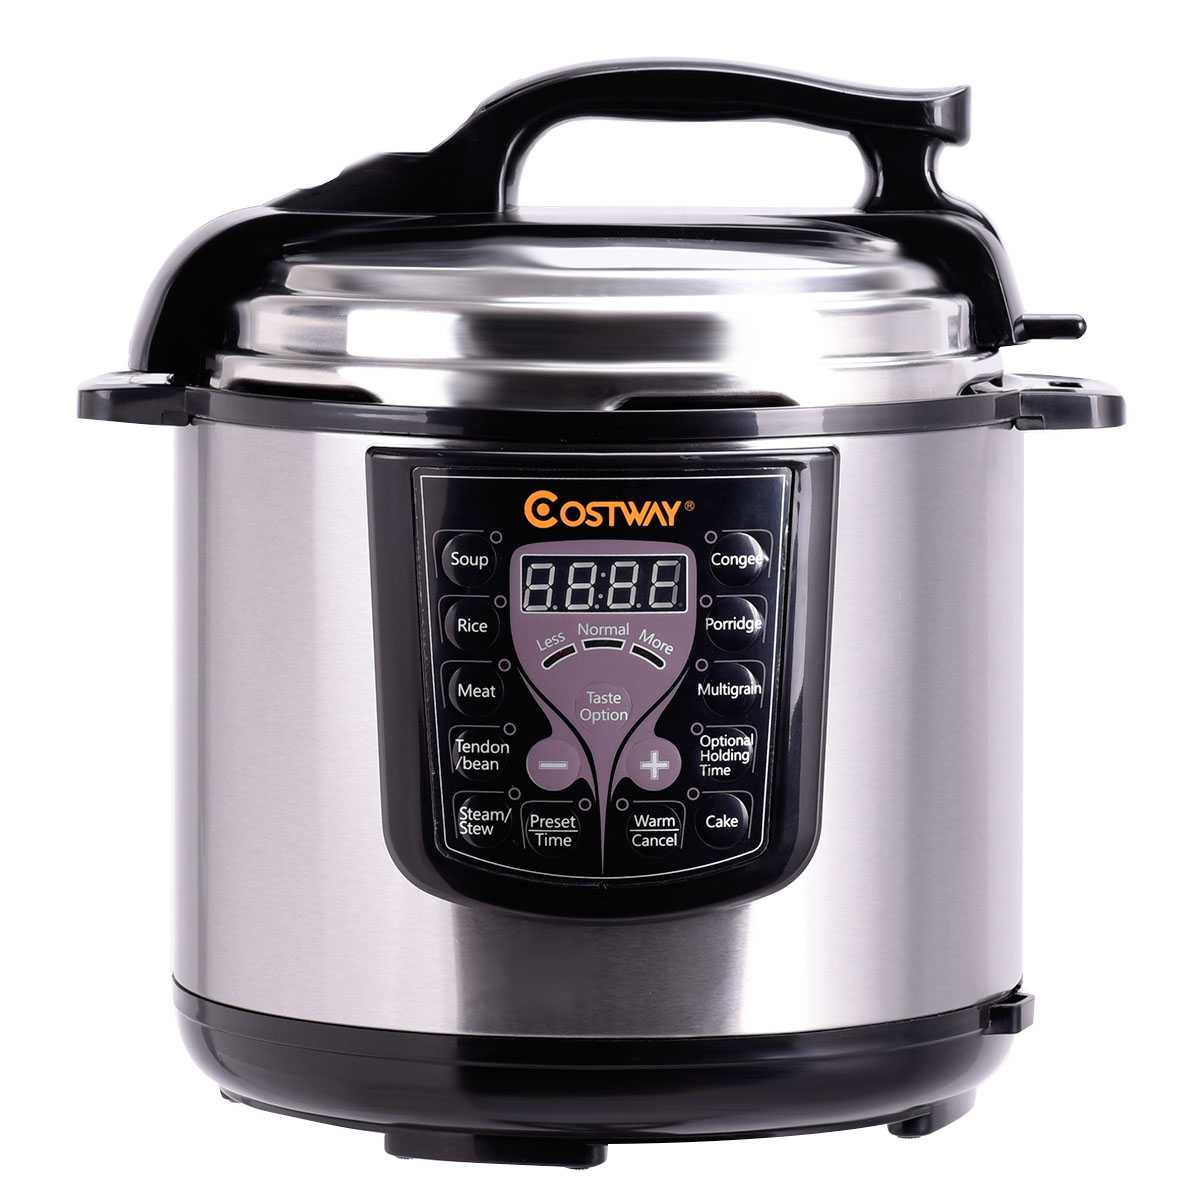 Costway 6-Quart Electric Pressure Cooker 1000 Watt Stainless Steel Kitchen